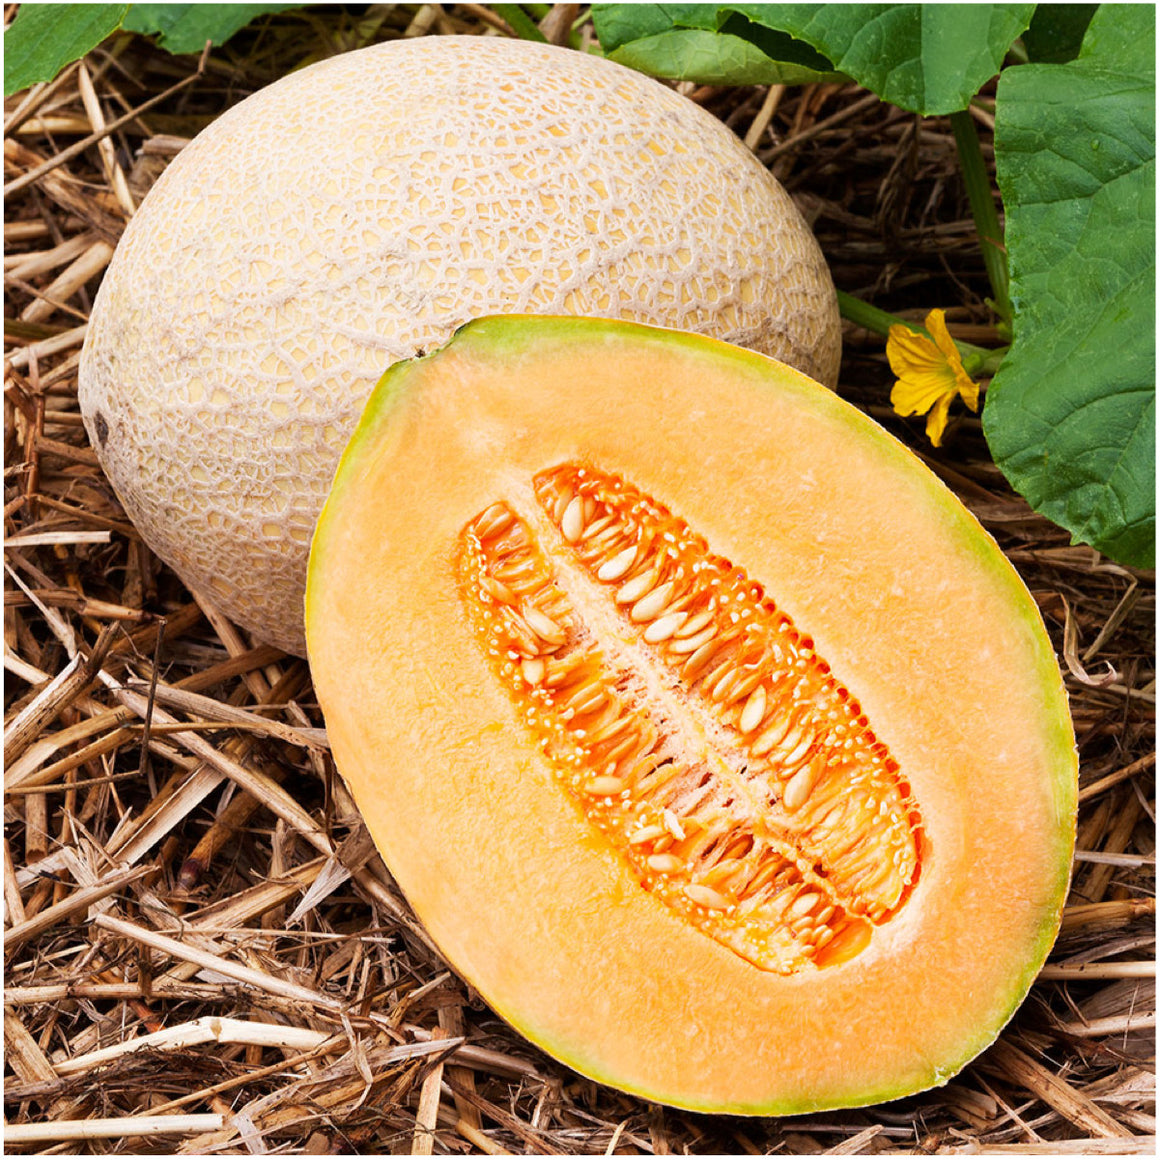 Hales Best Melon